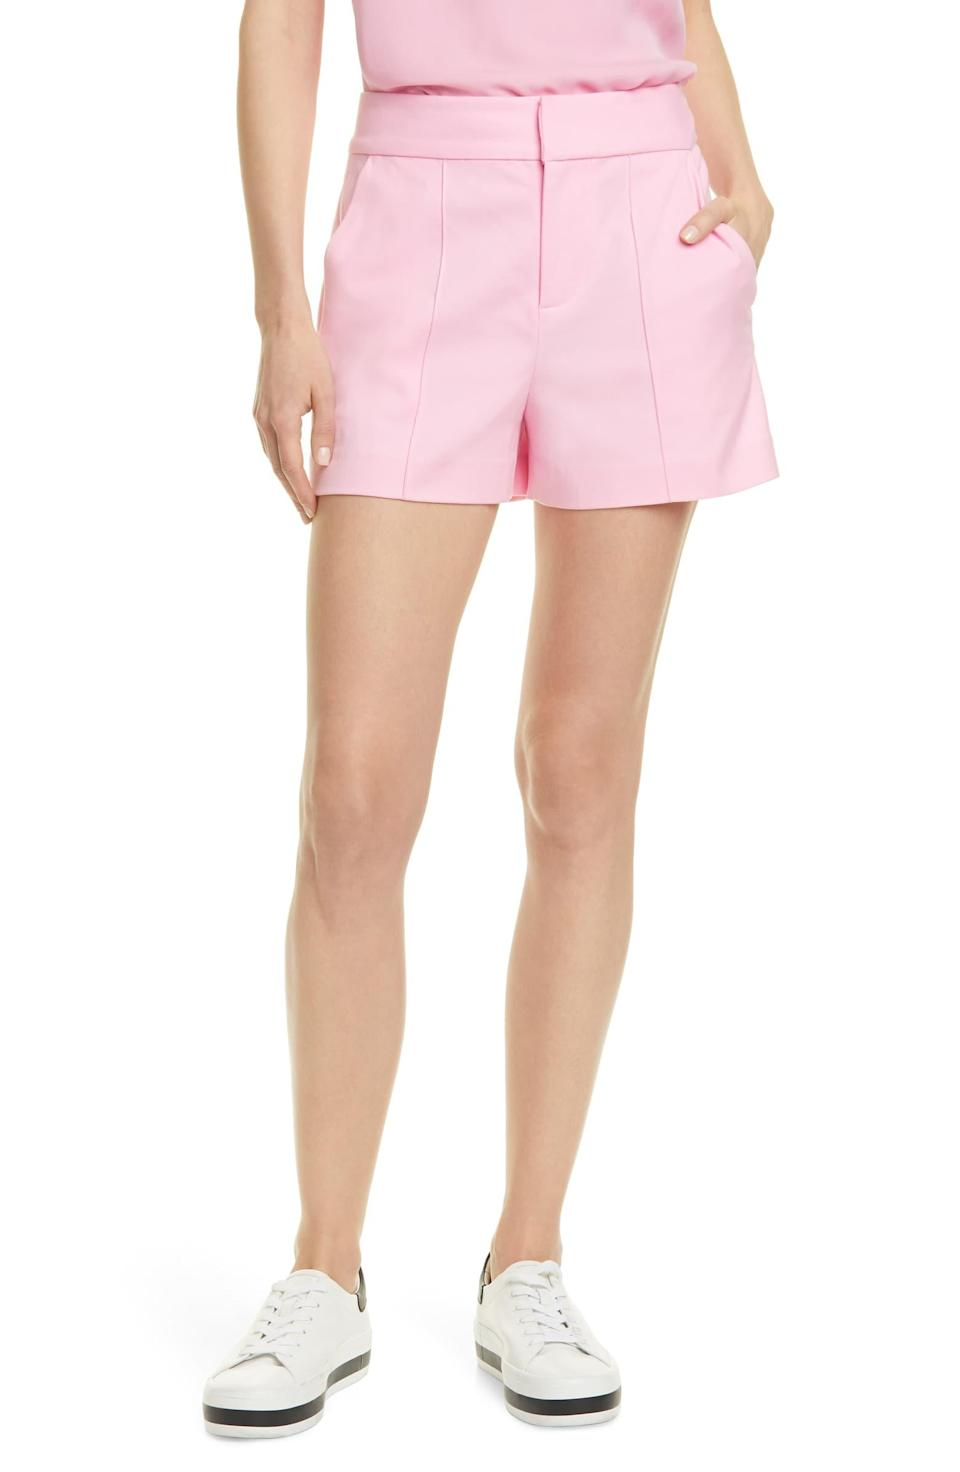 Alice + Olivia Dylan High Waist Pintuck Shorts. Image via Nordstrom.